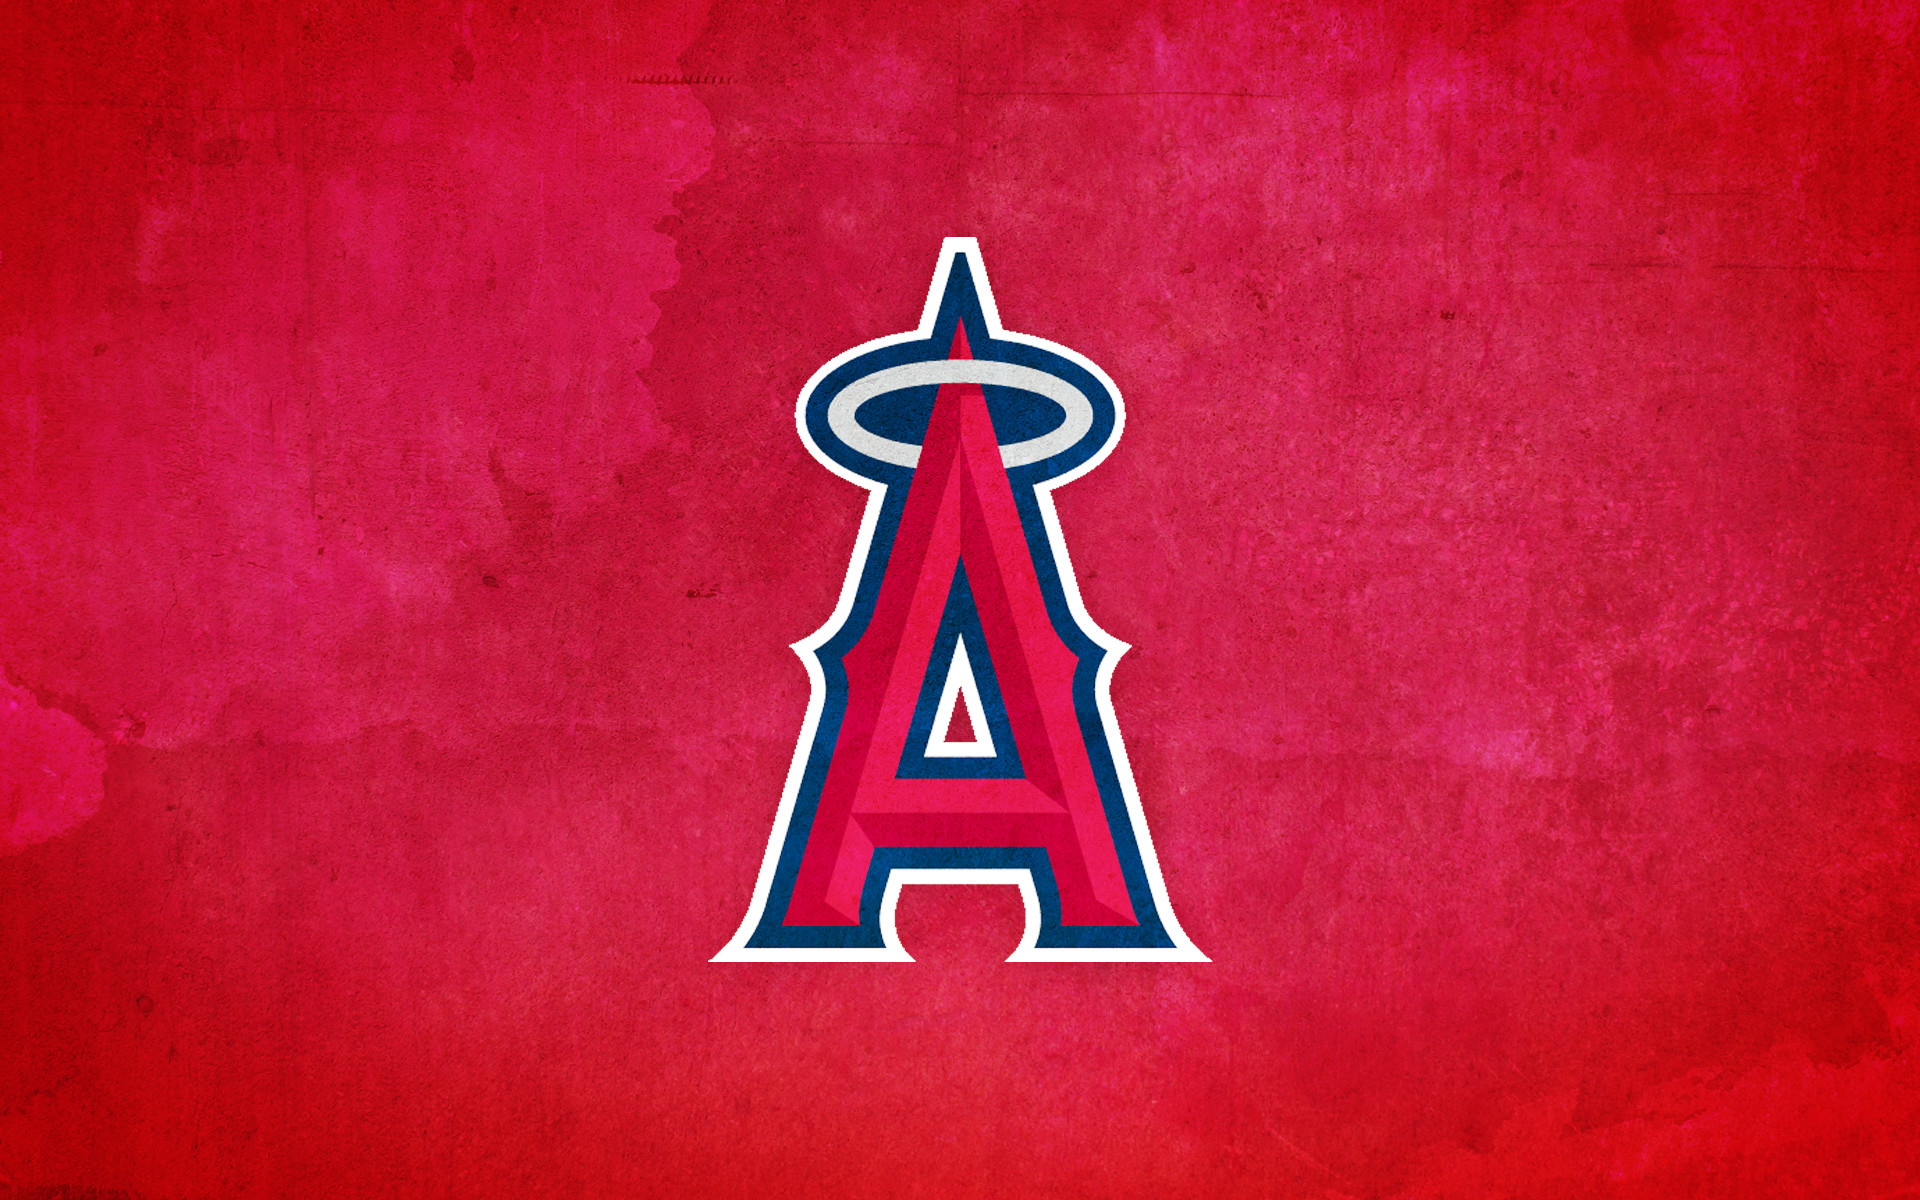 1920x1200 angeles angels mlb wallpaper share this mlb baseball team wallpaper